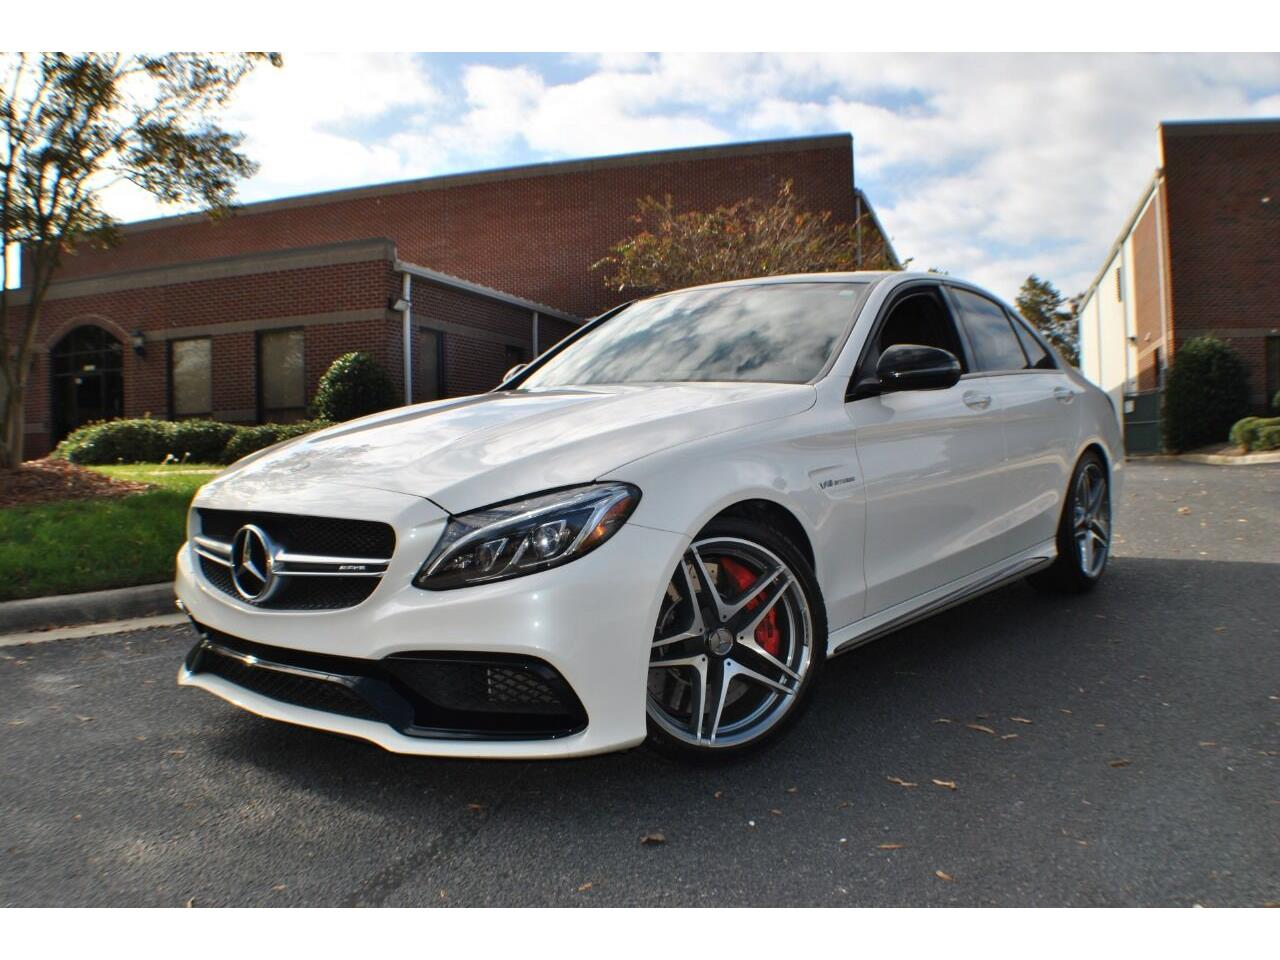 2016 Mercedes-Benz C-Class (CC-1421634) for sale in Charlotte, North Carolina